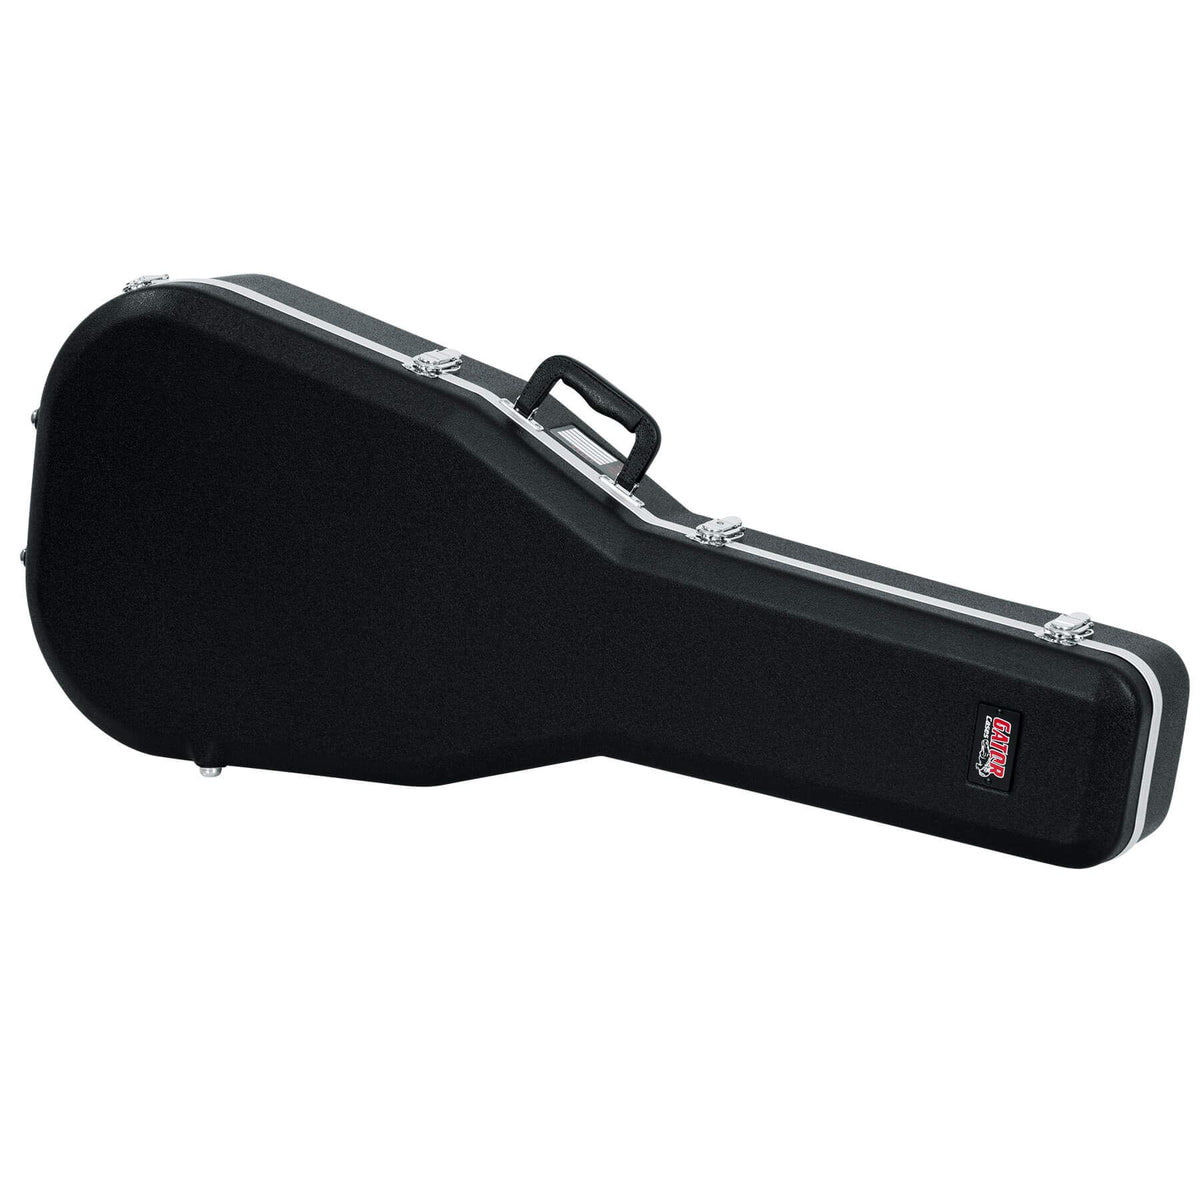 Gator Classical Guitar Case fits Gibson 1932 L-00 Reissue